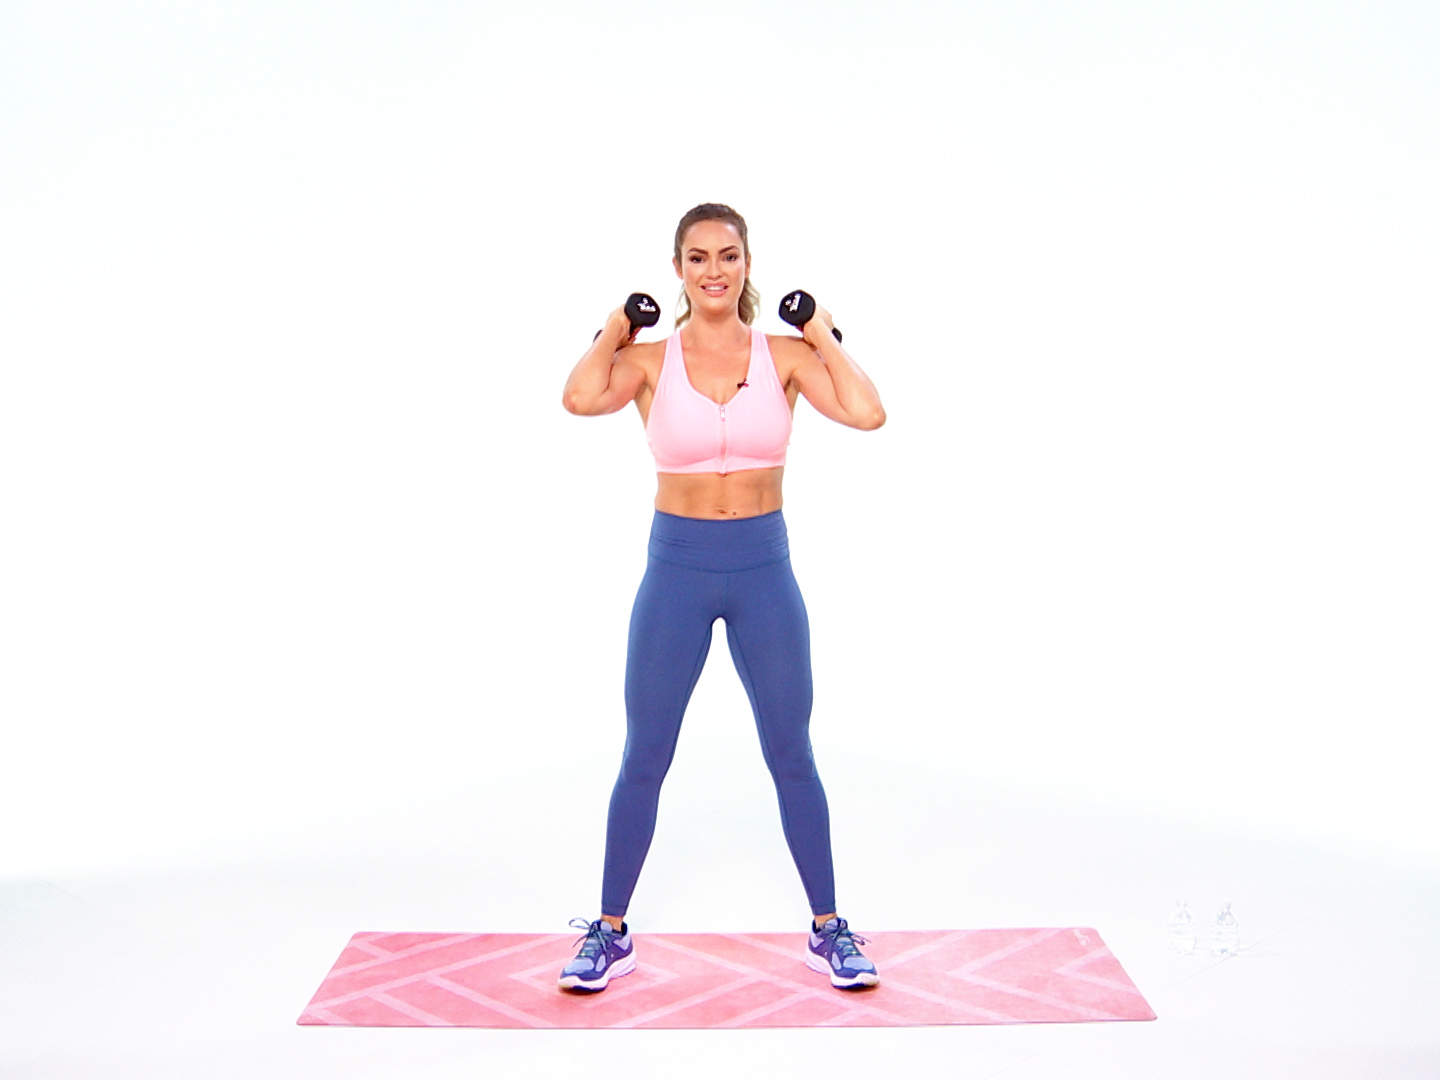 emily-skye-at-home-workout-video